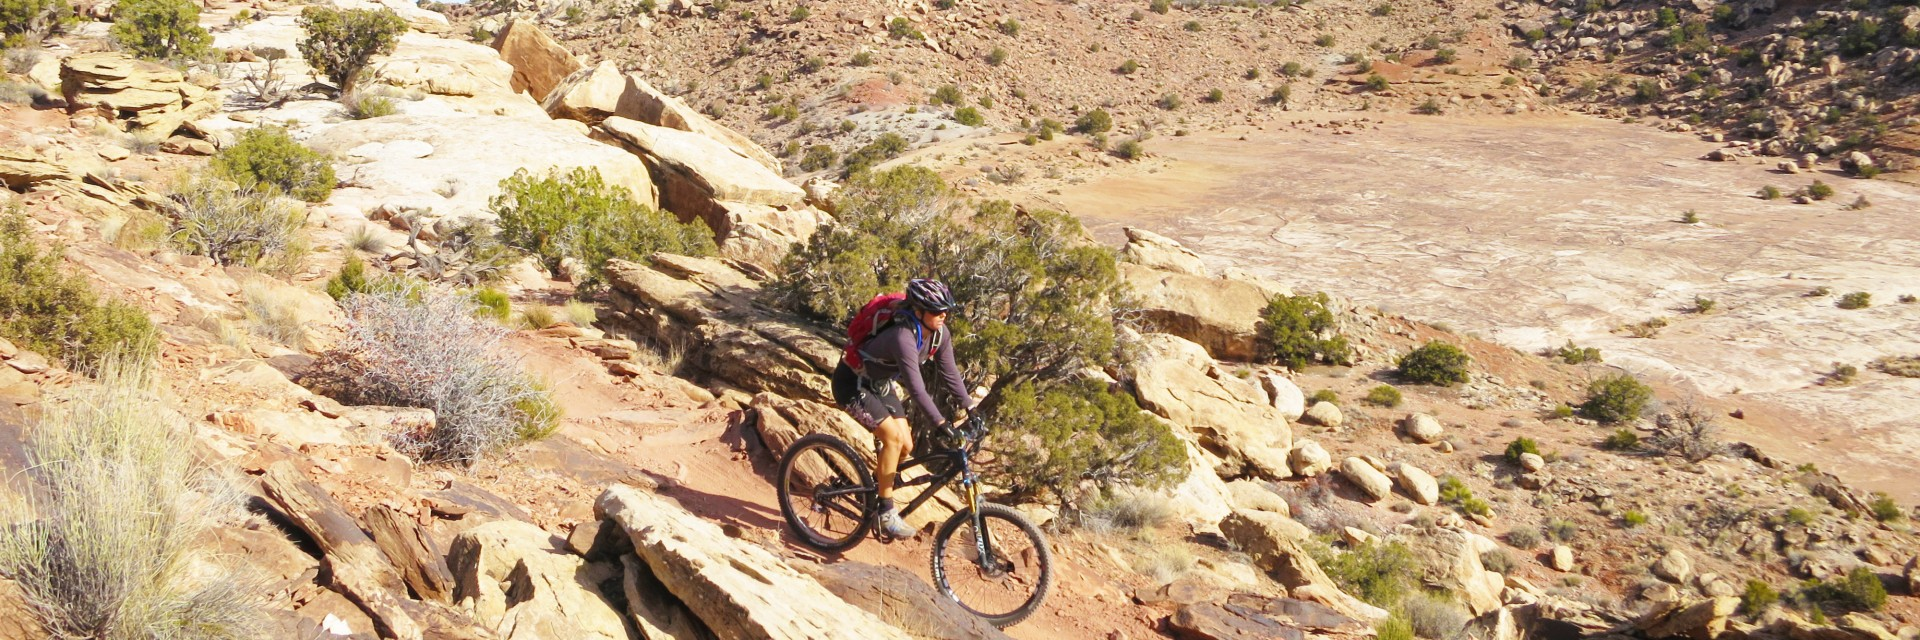 A rider descends the Alaska section of the North Klondike Singletrack guided mountain bike tour near Moab, UT